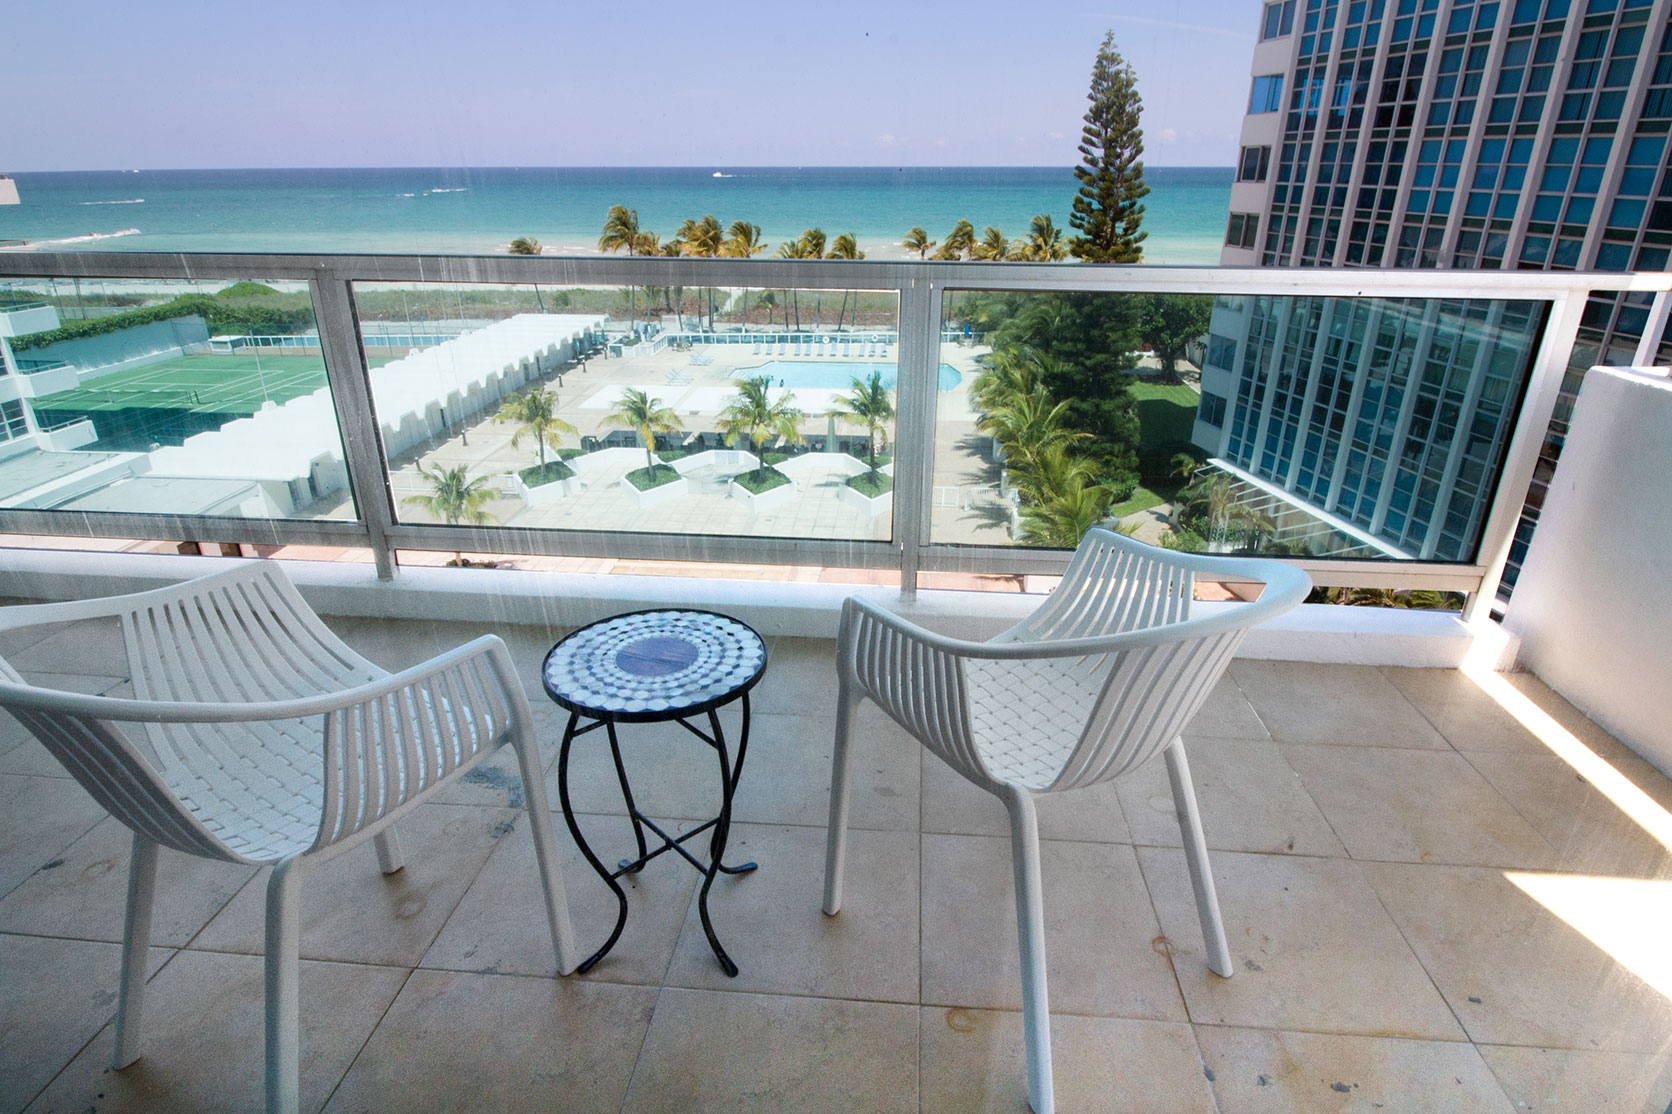 Ocean View Balcony at Seacoast Suites